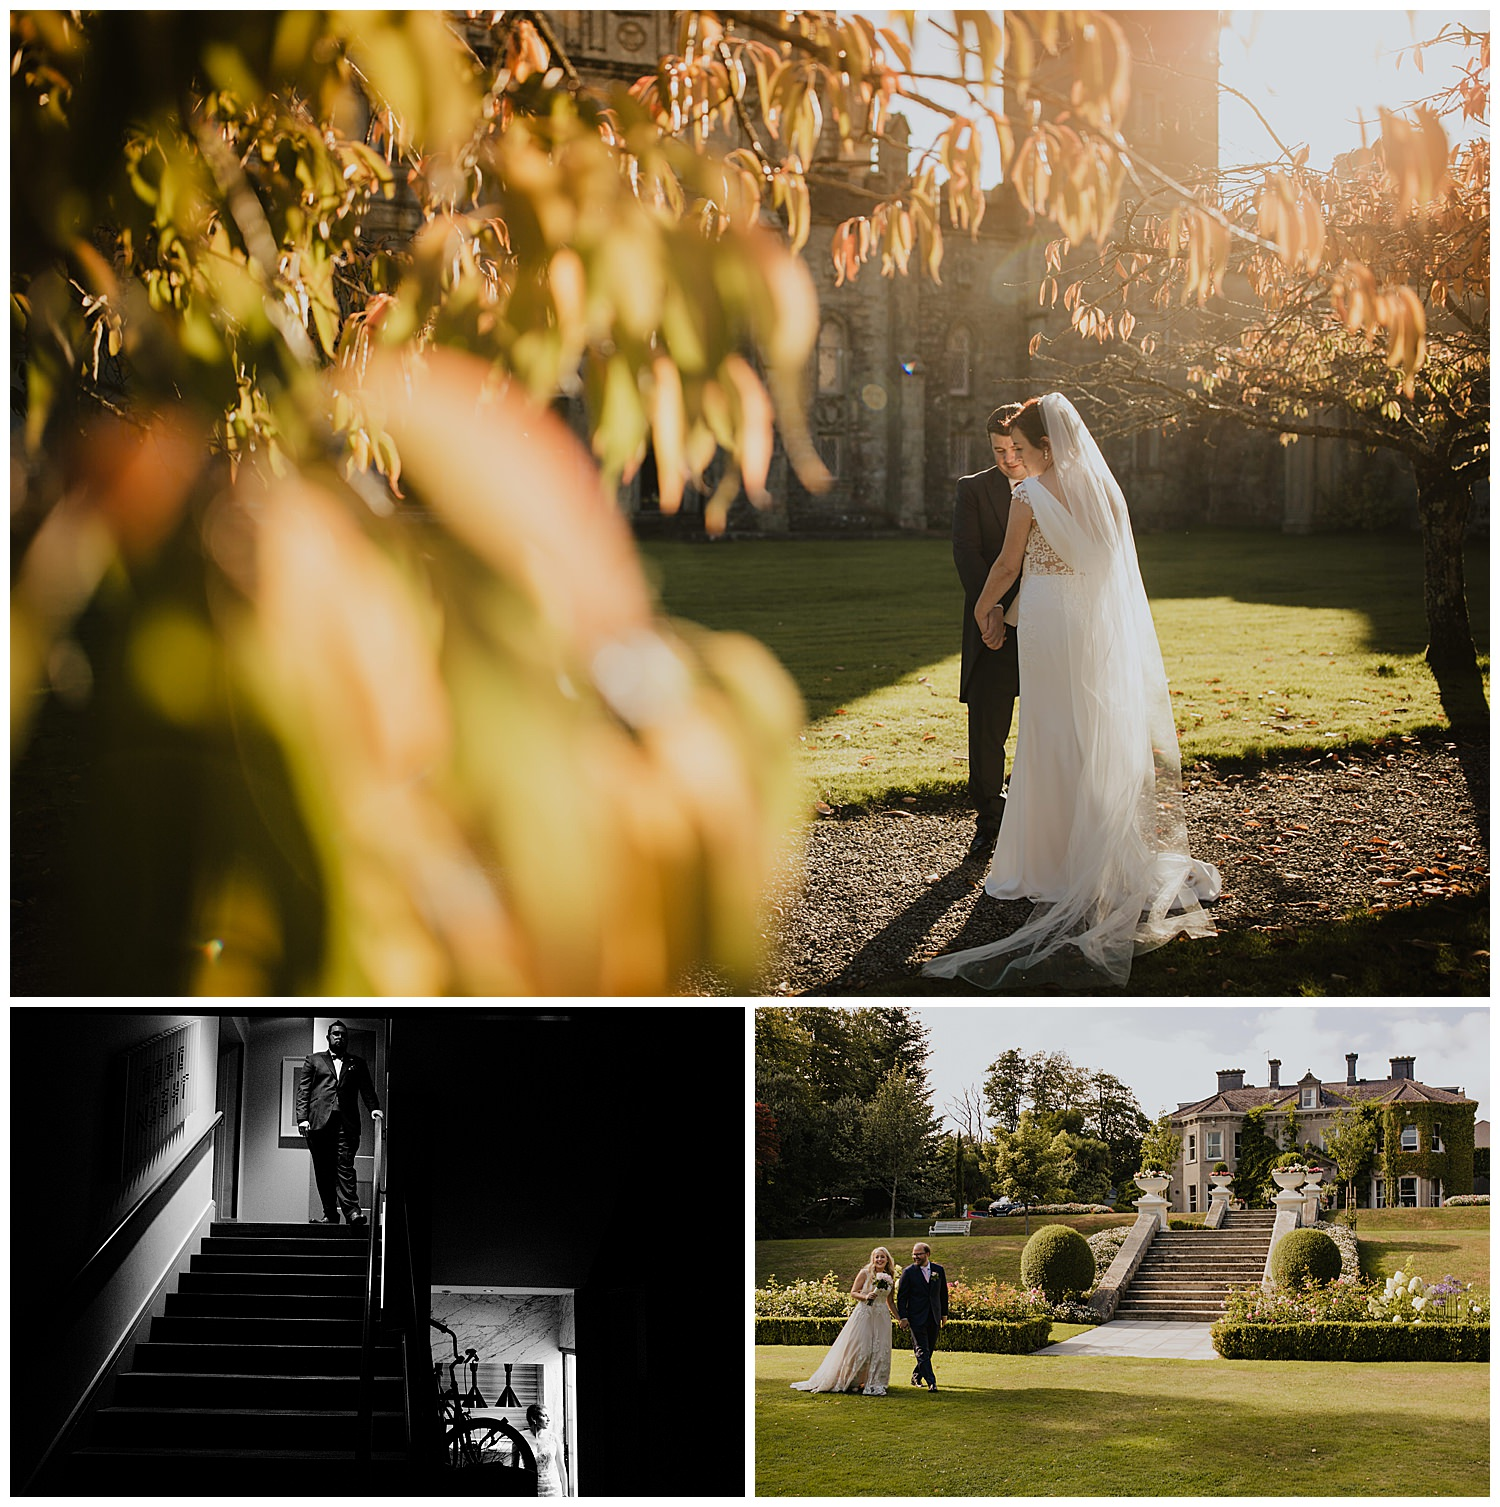 t&m_wedding_borris_house_wedding_photographer_livia_figueiredo_421.jpg